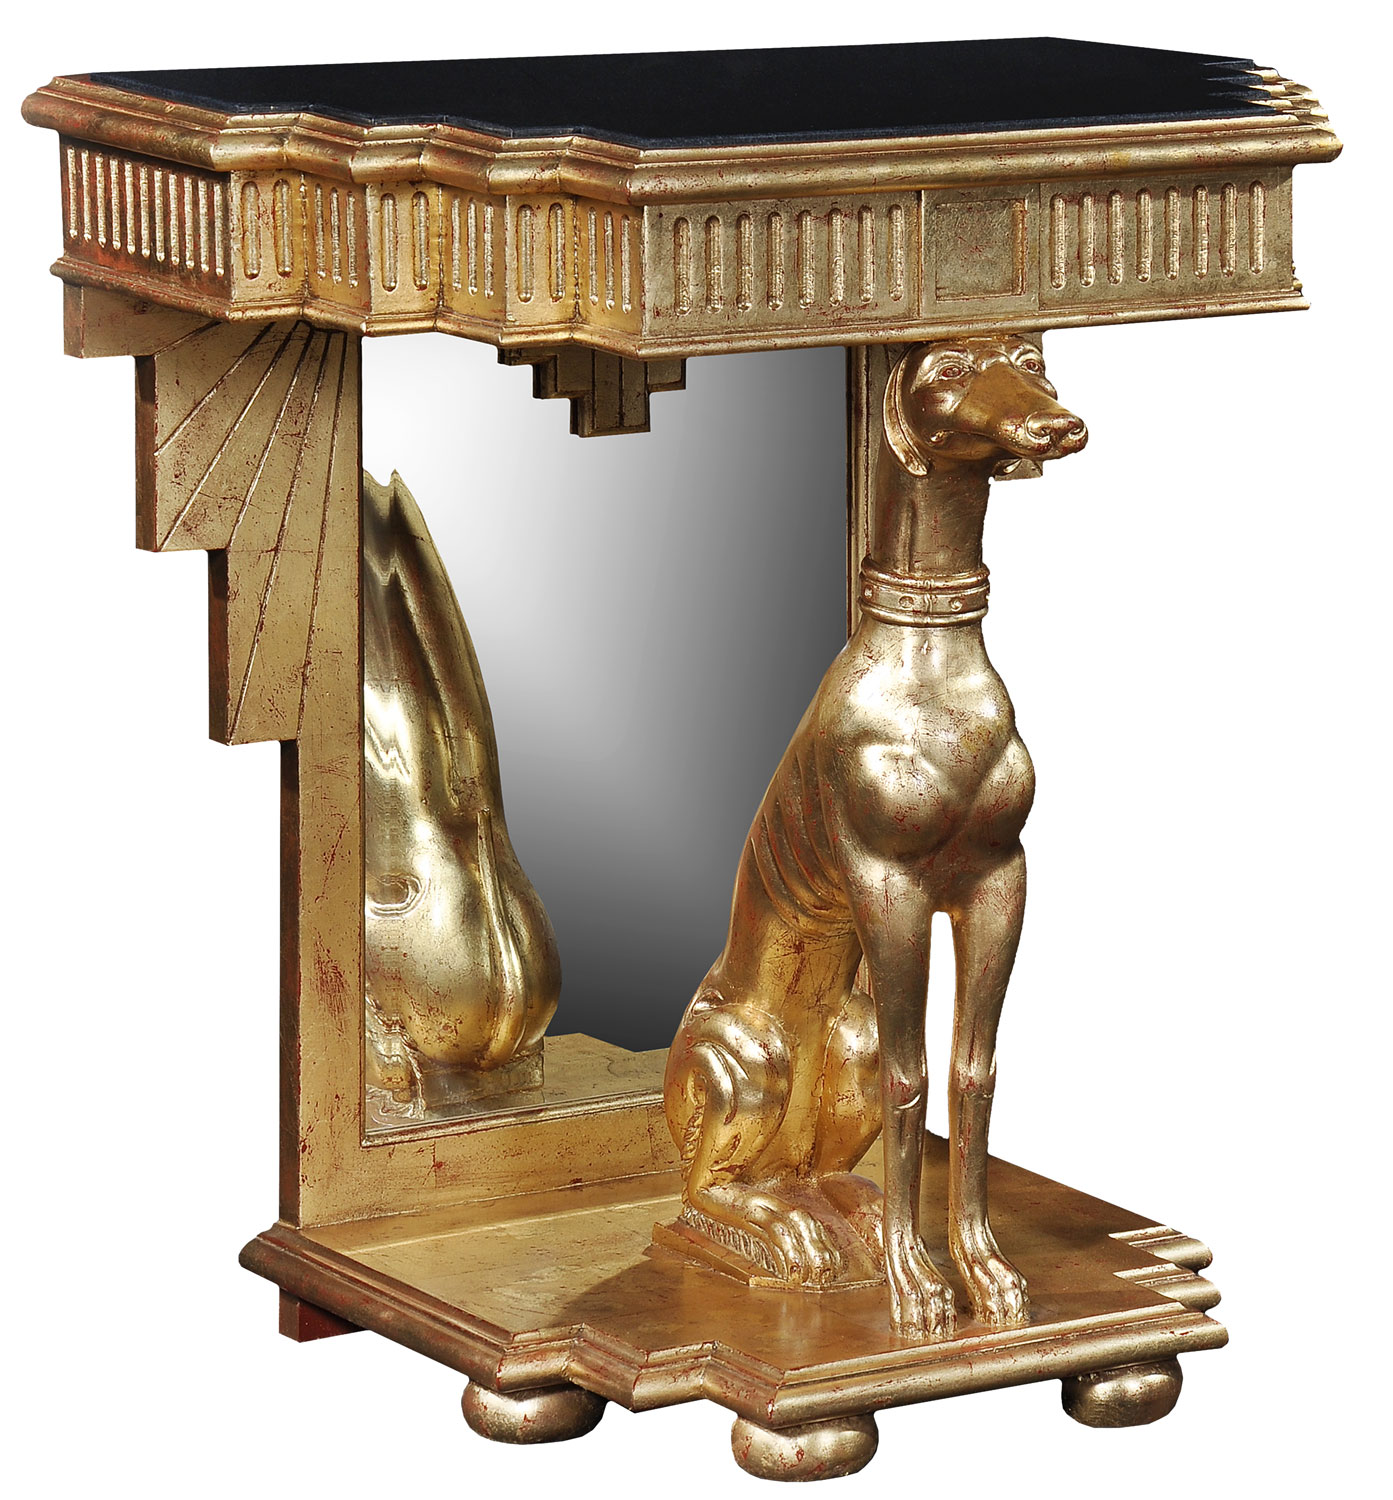 Gold leaf console table - Antique finish